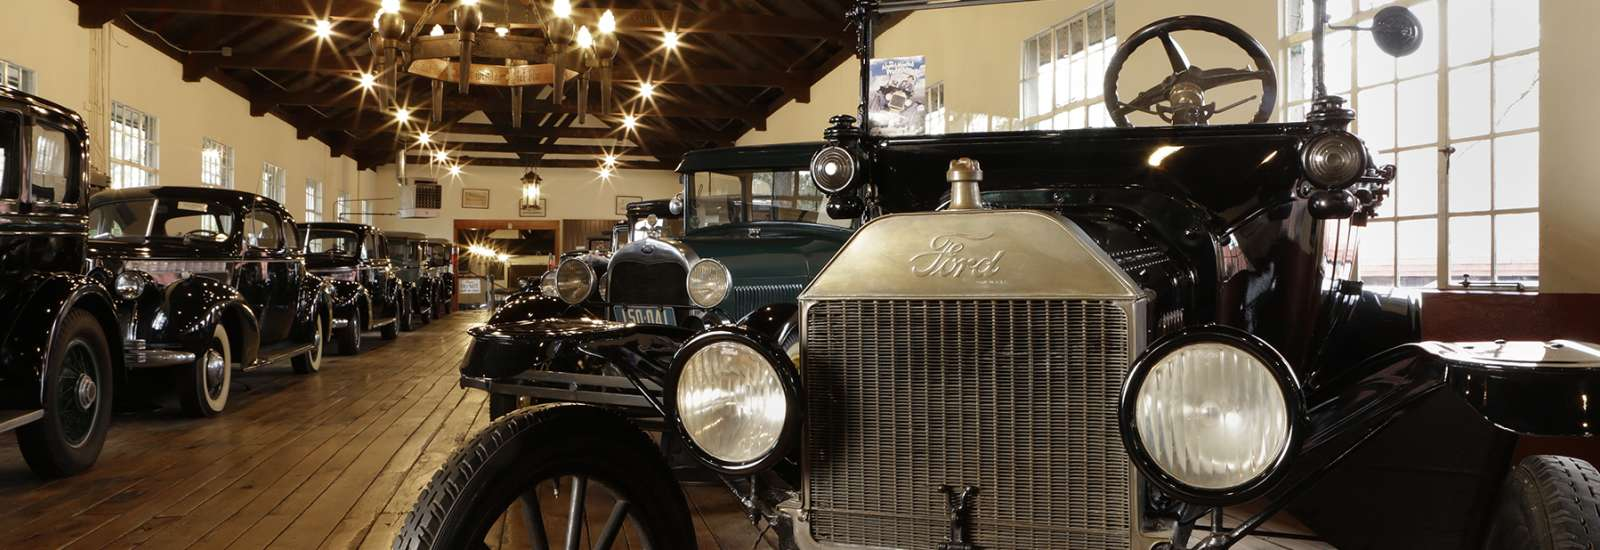 Antique Car Museum at Grovewood Village